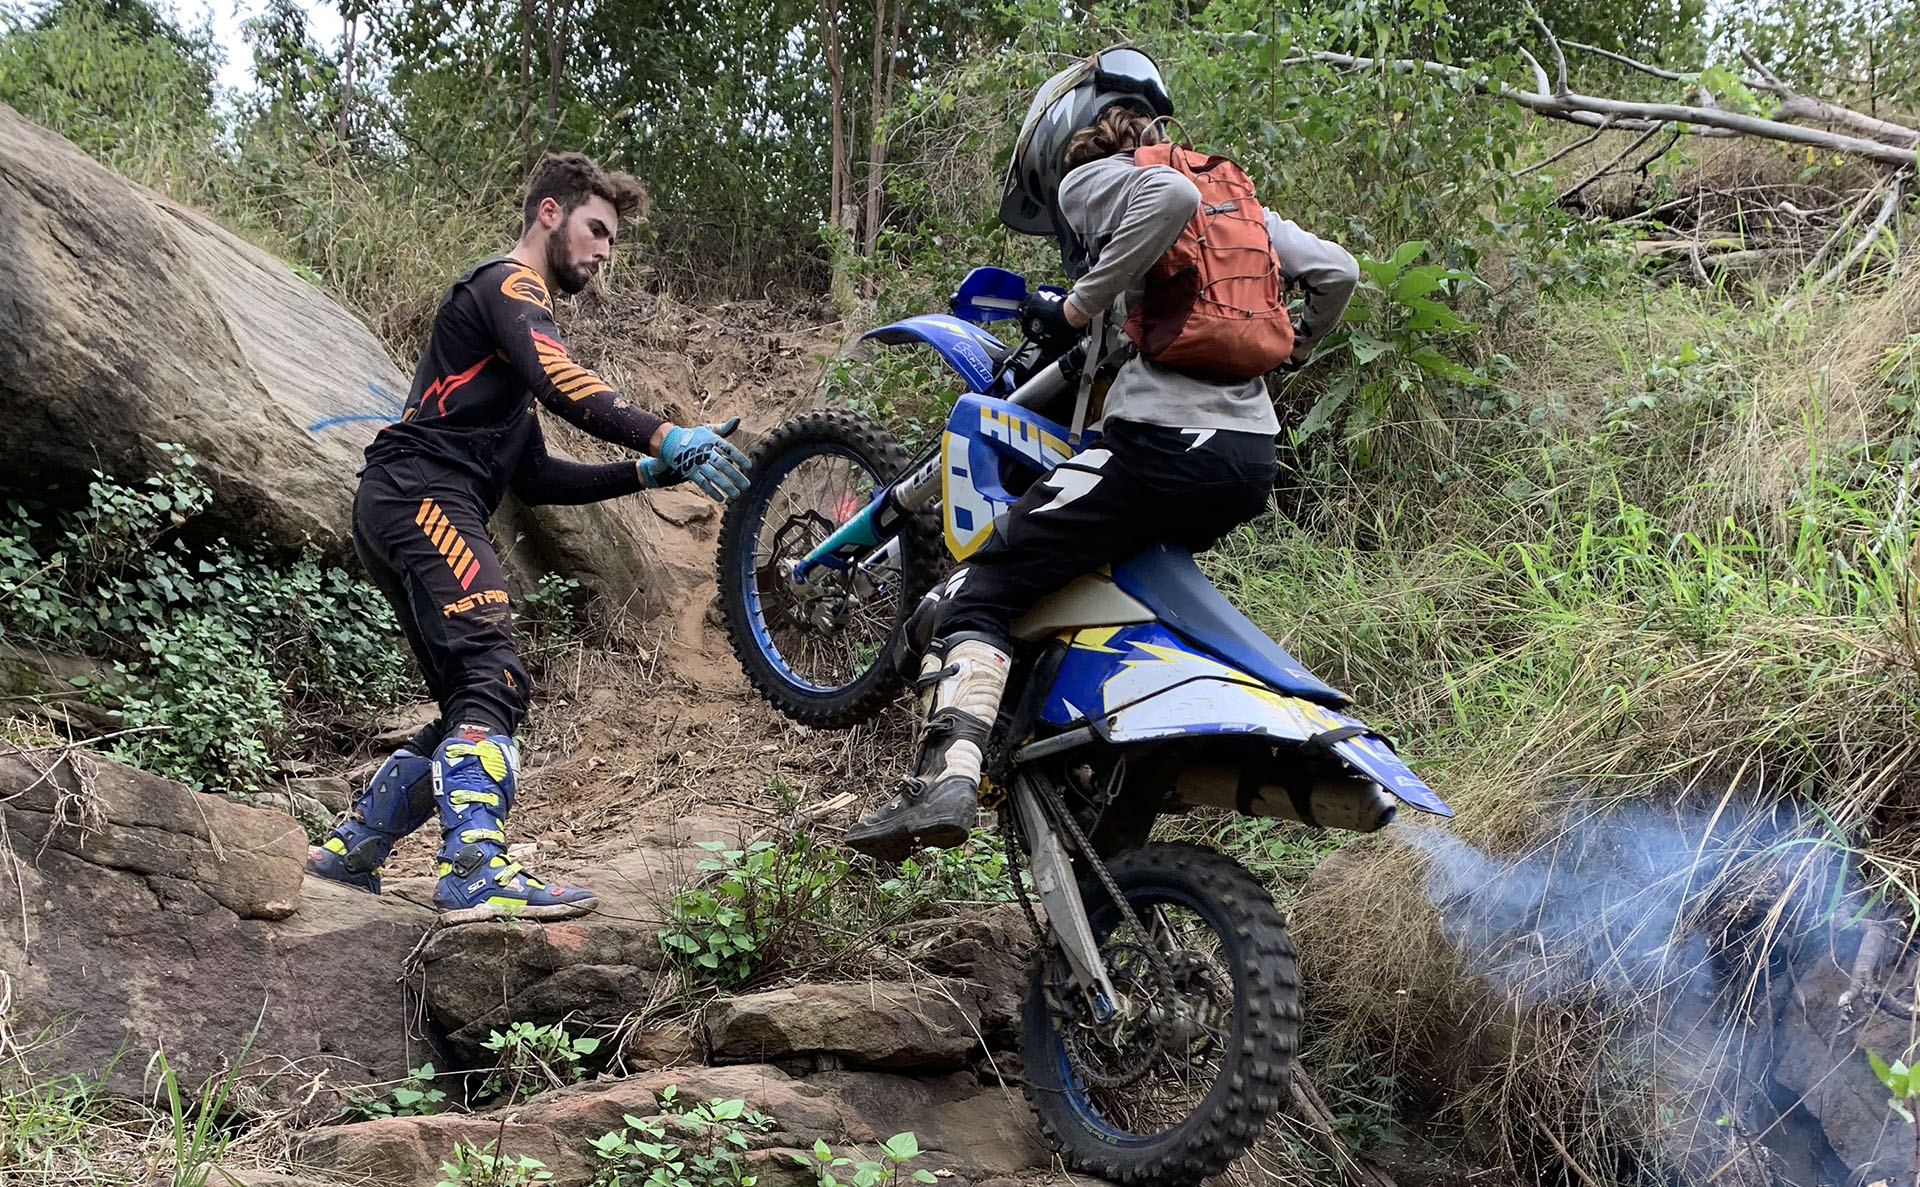 Trials and Enduro Motorbike Riding Coaching Clinics Australia